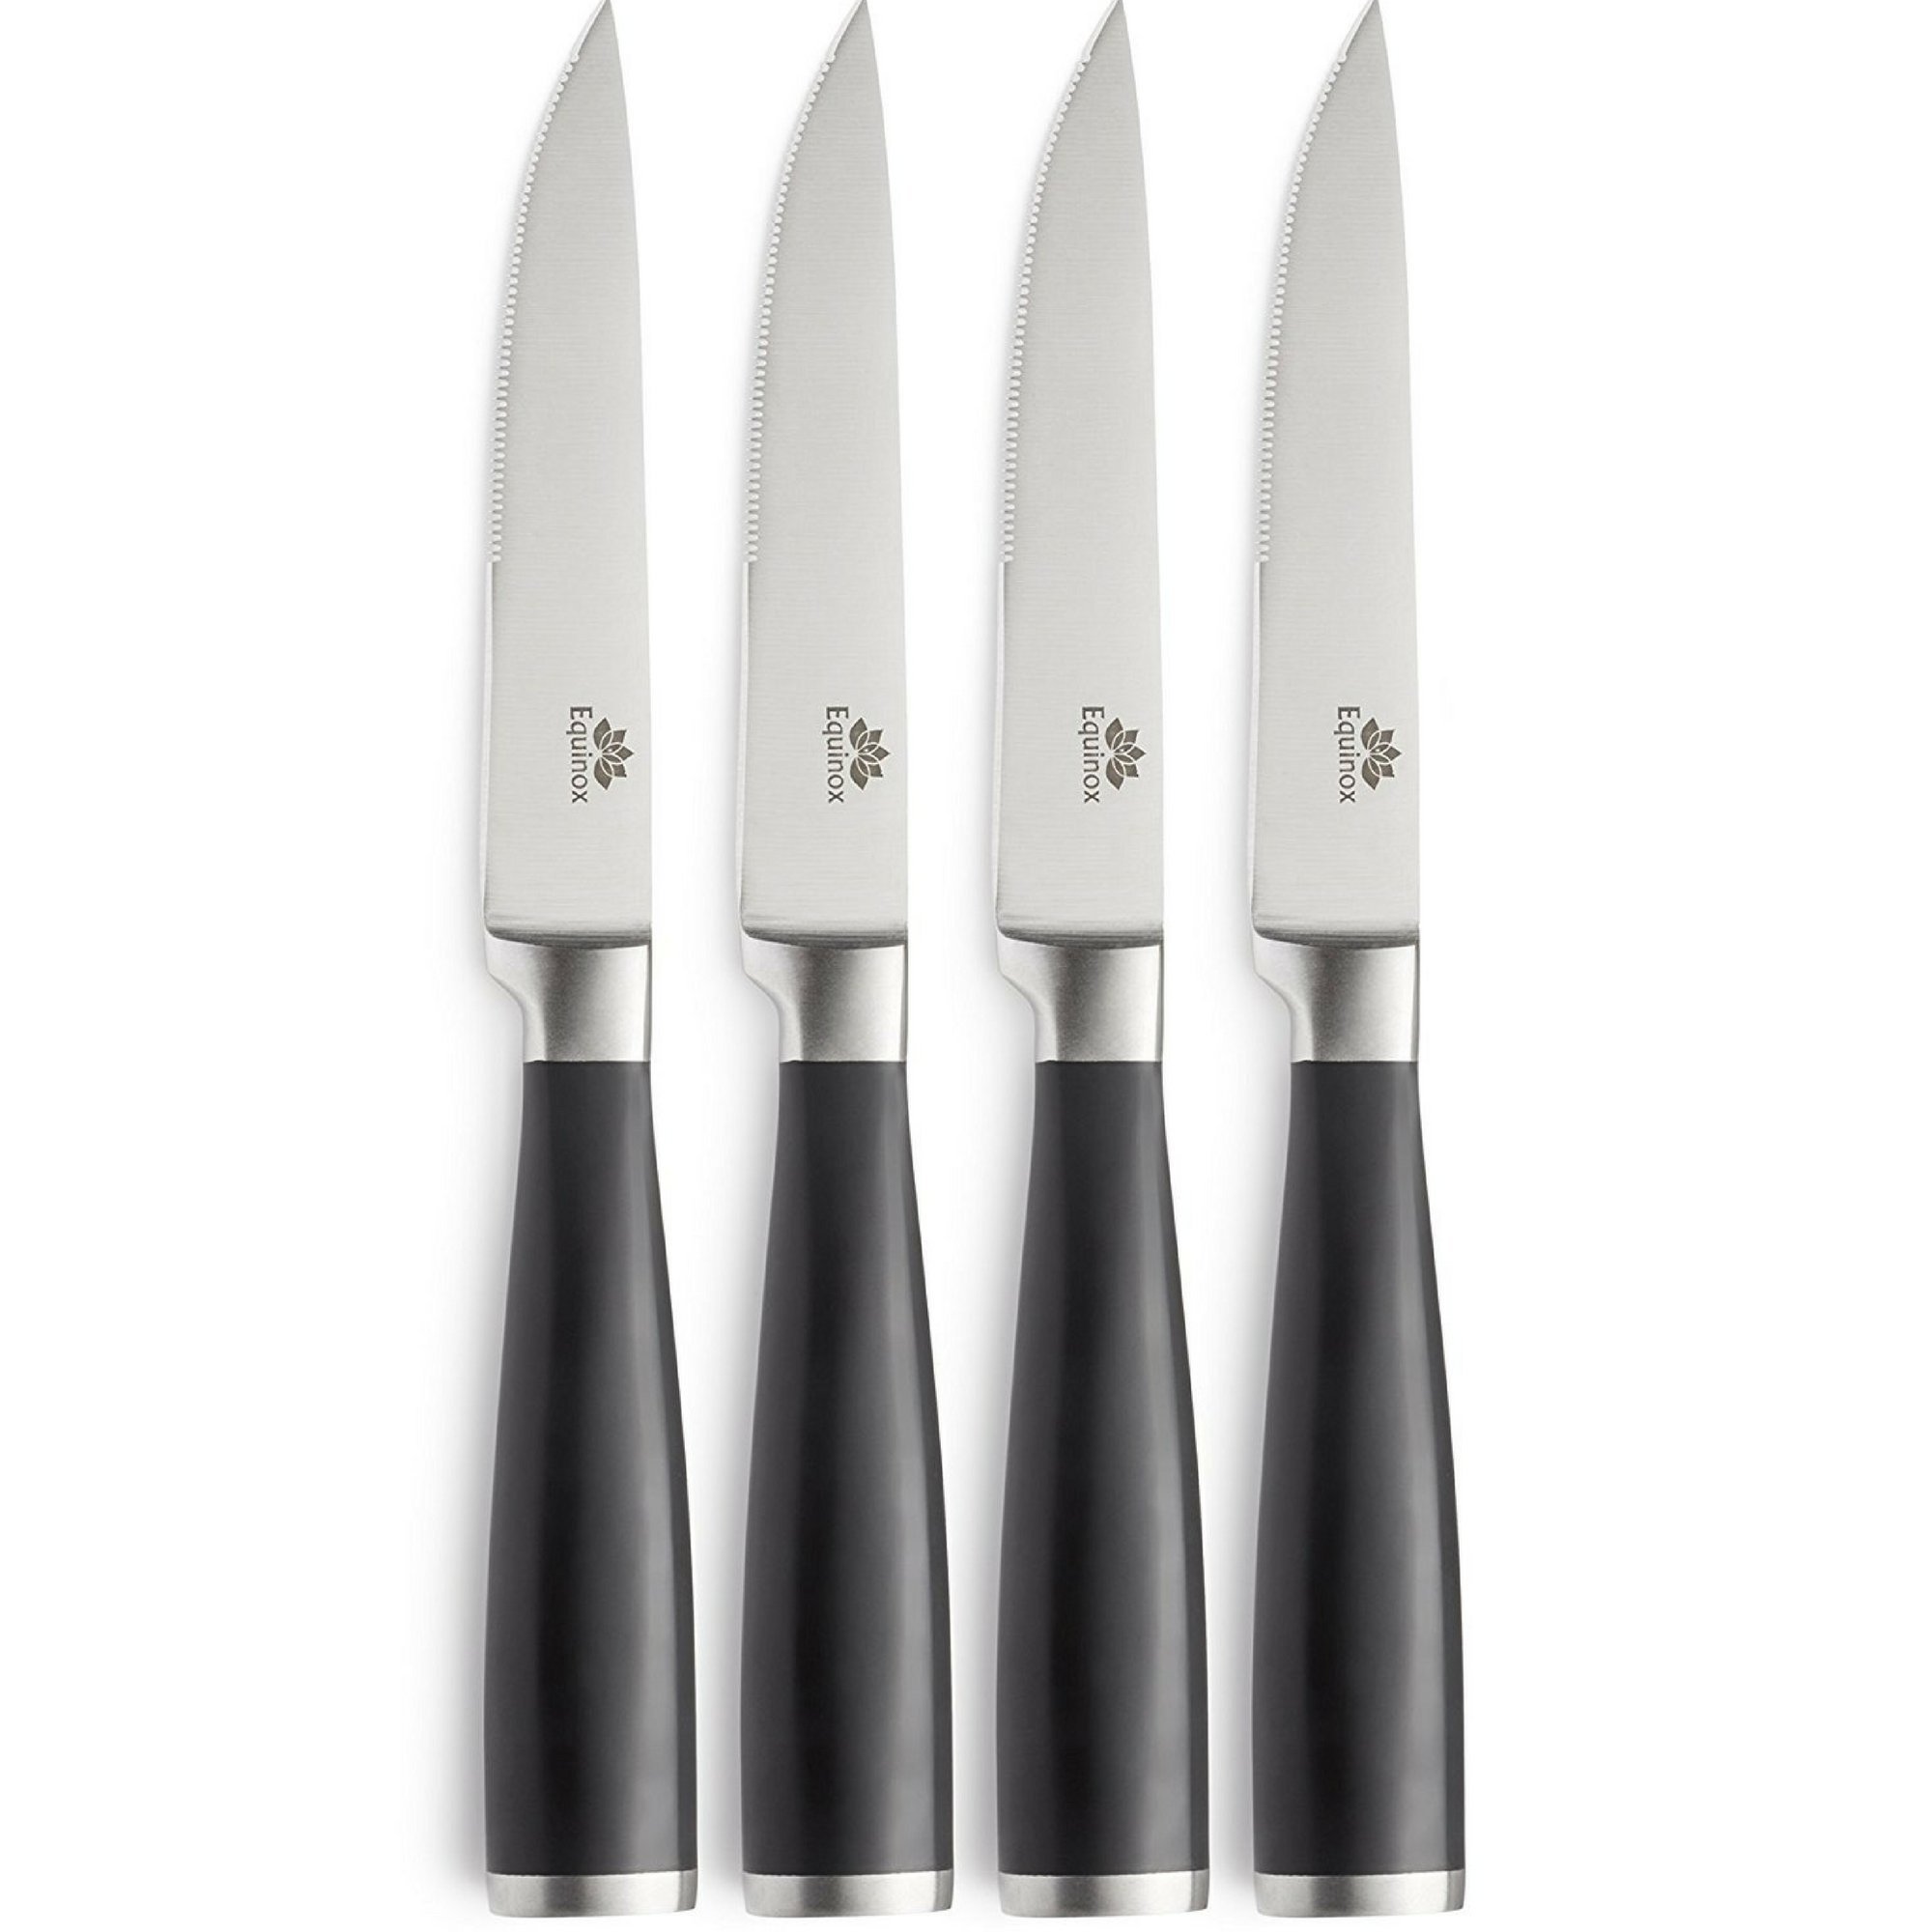 Equinox 4-Piece Stainless Steel Steak Knife Set, Serrated Steak Knives Set of 4 With ABS Handle by Equinox International